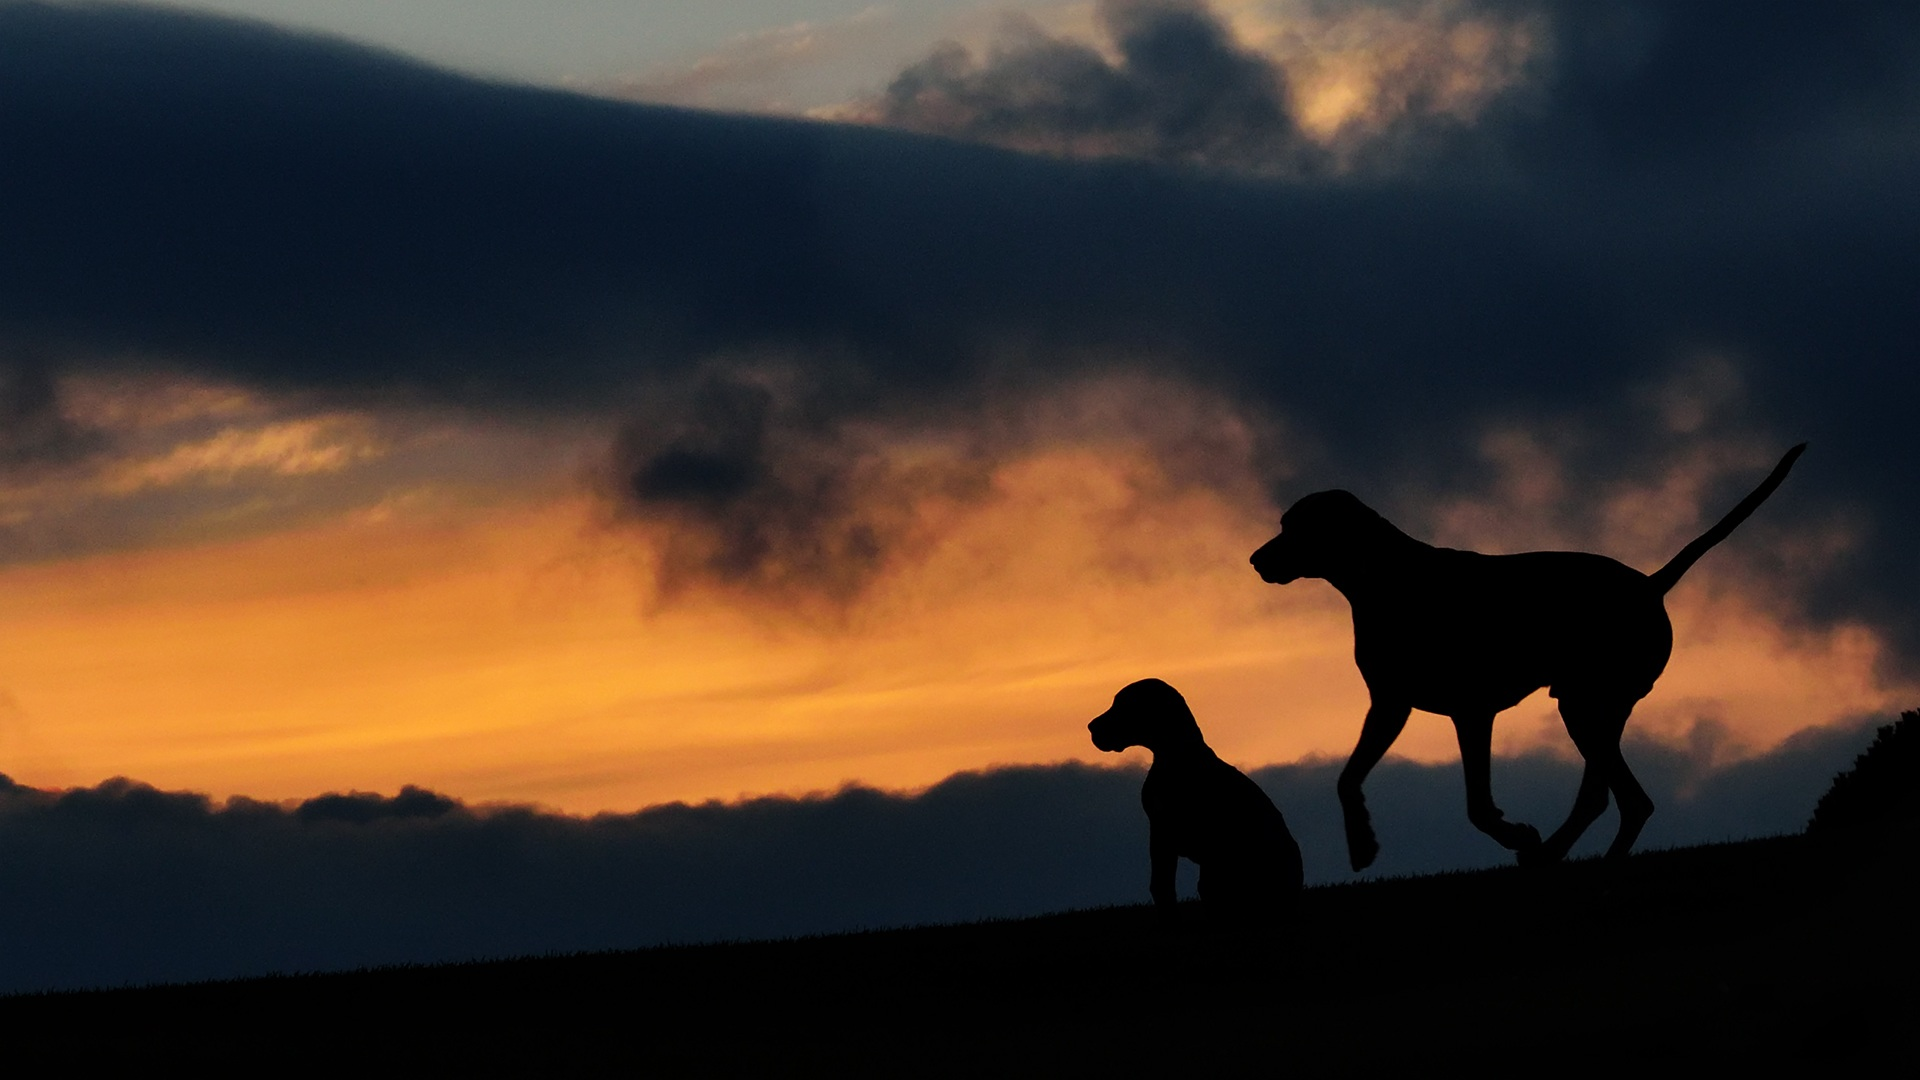 Hd Wallpaper 4k Iphone Free Stock Photo Of Silhouette Sunset Two Dogs